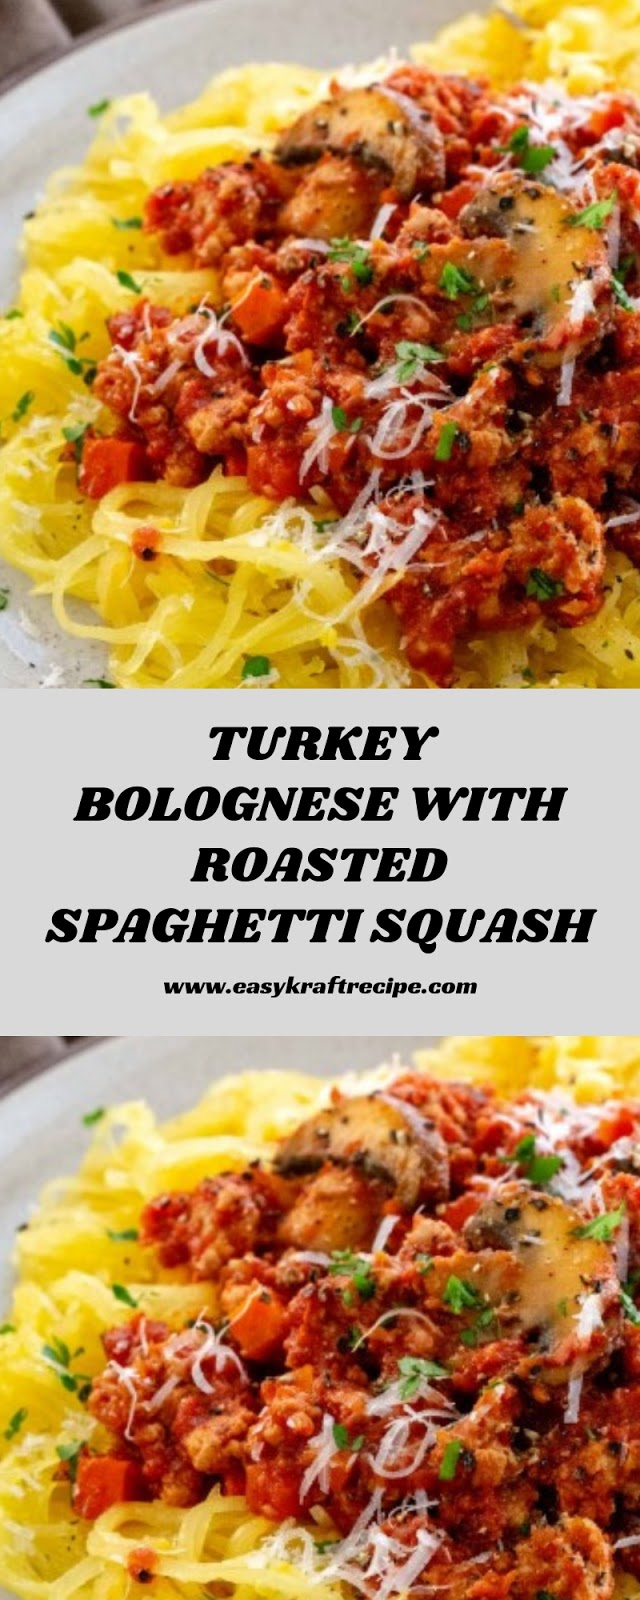 TURKEY BOLOGNESE WITH ROASTED SPAGHETTI SQUASH